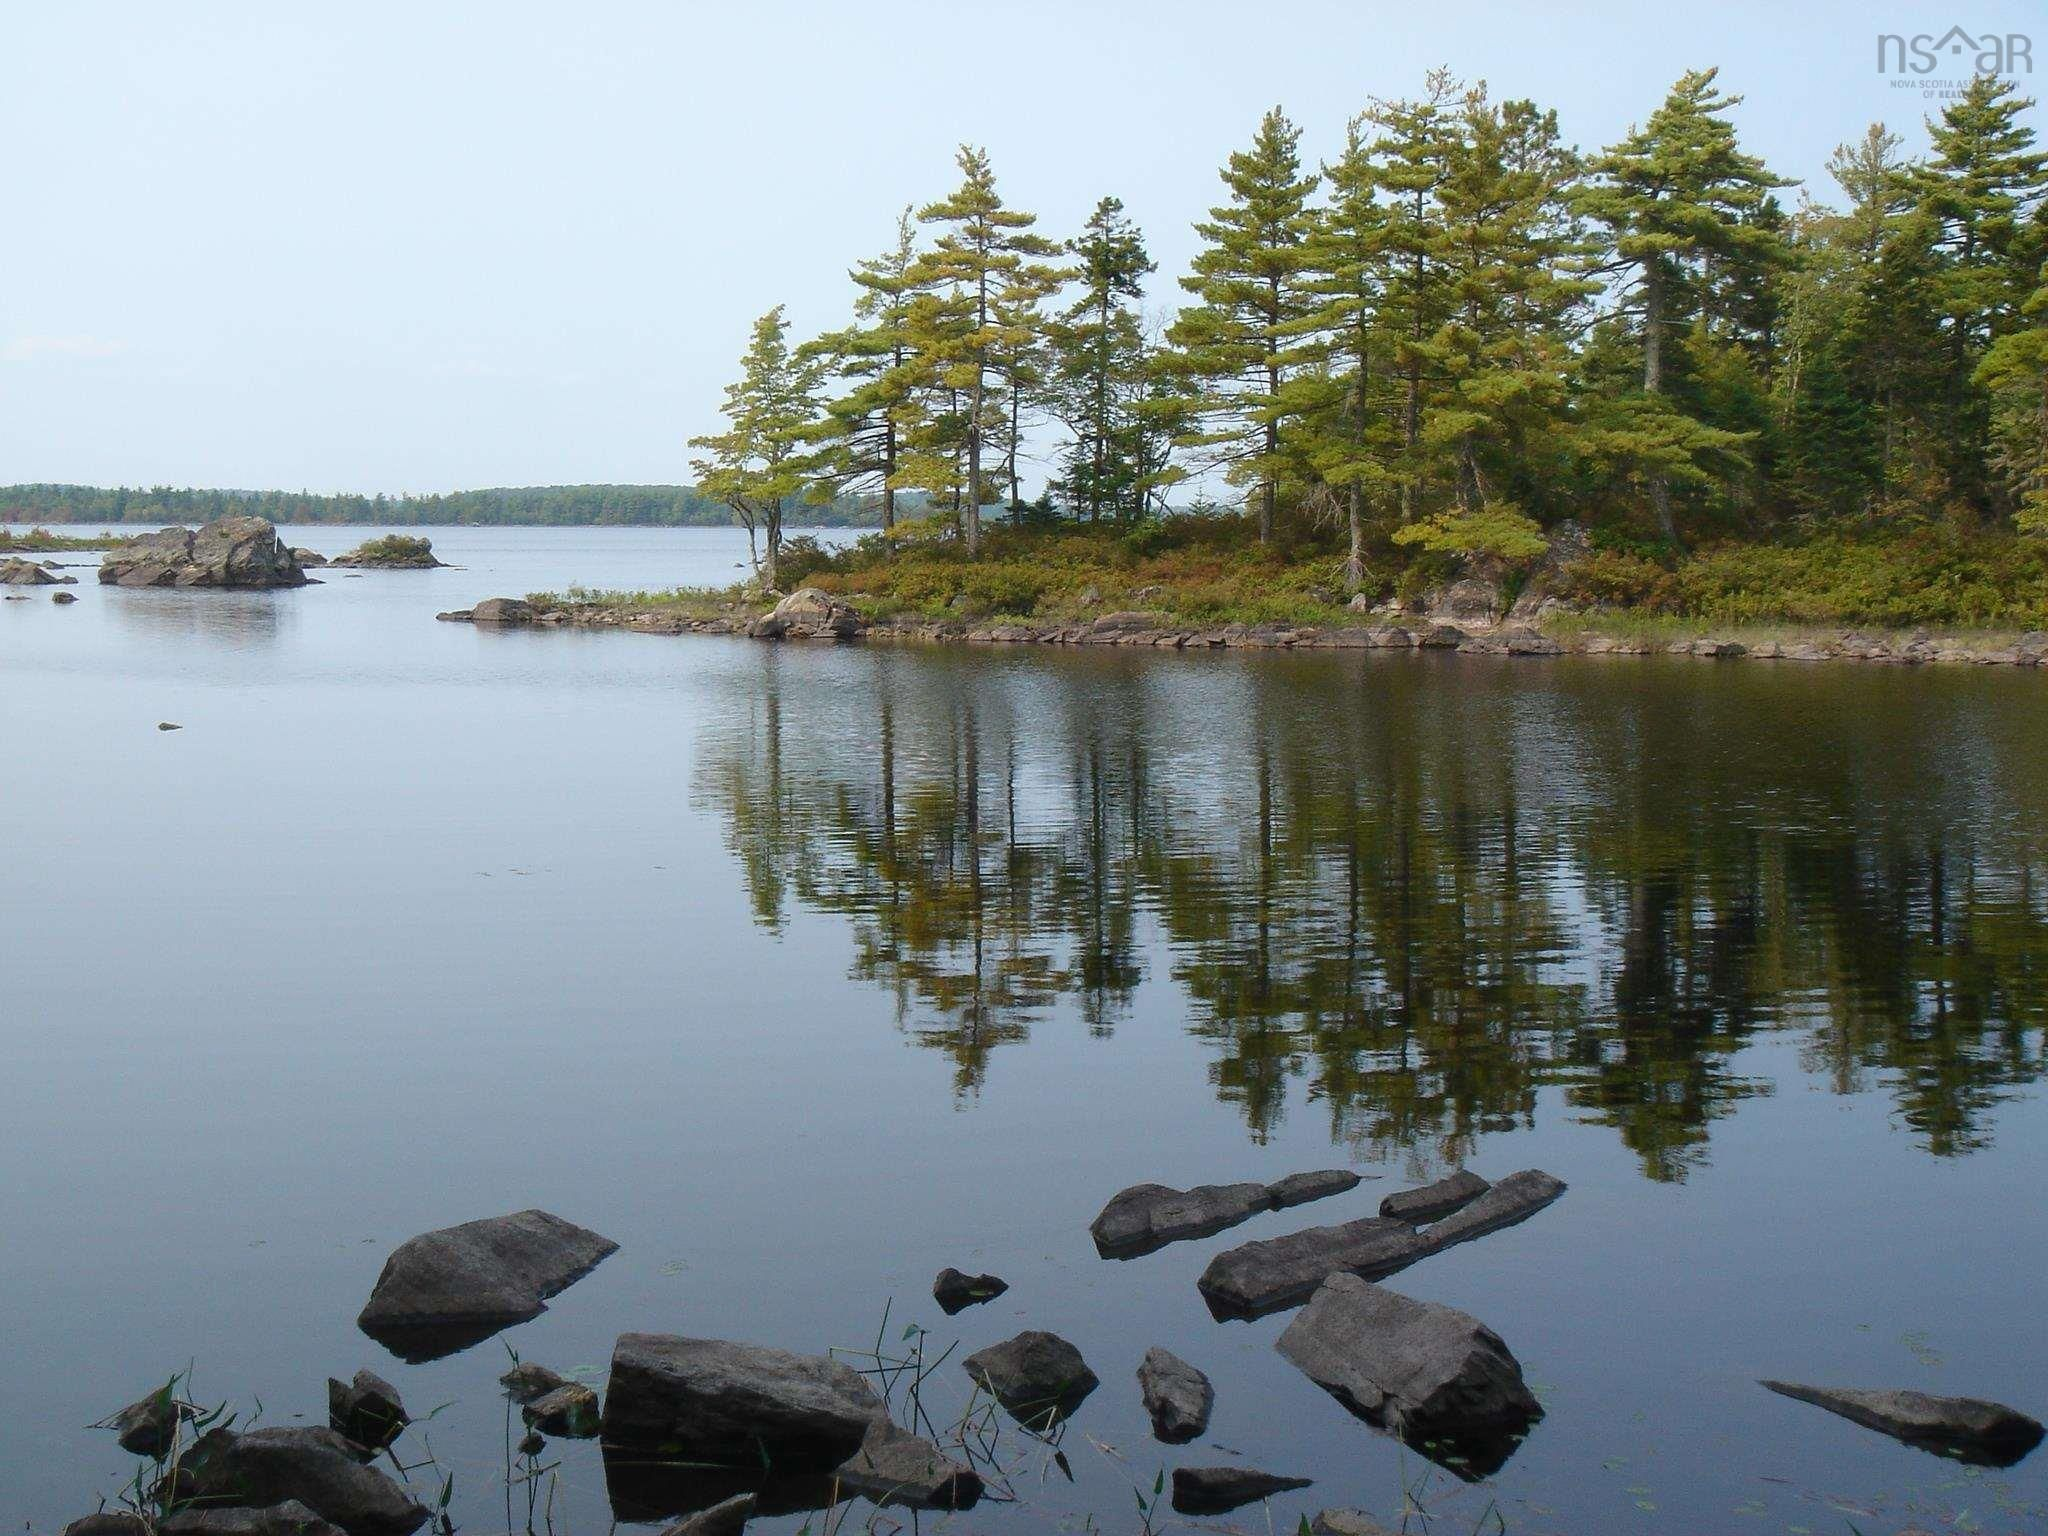 Main Photo: Lot 2 Labelle Road in Molega Lake: 406-Queens County Vacant Land for sale (South Shore)  : MLS®# 202124241